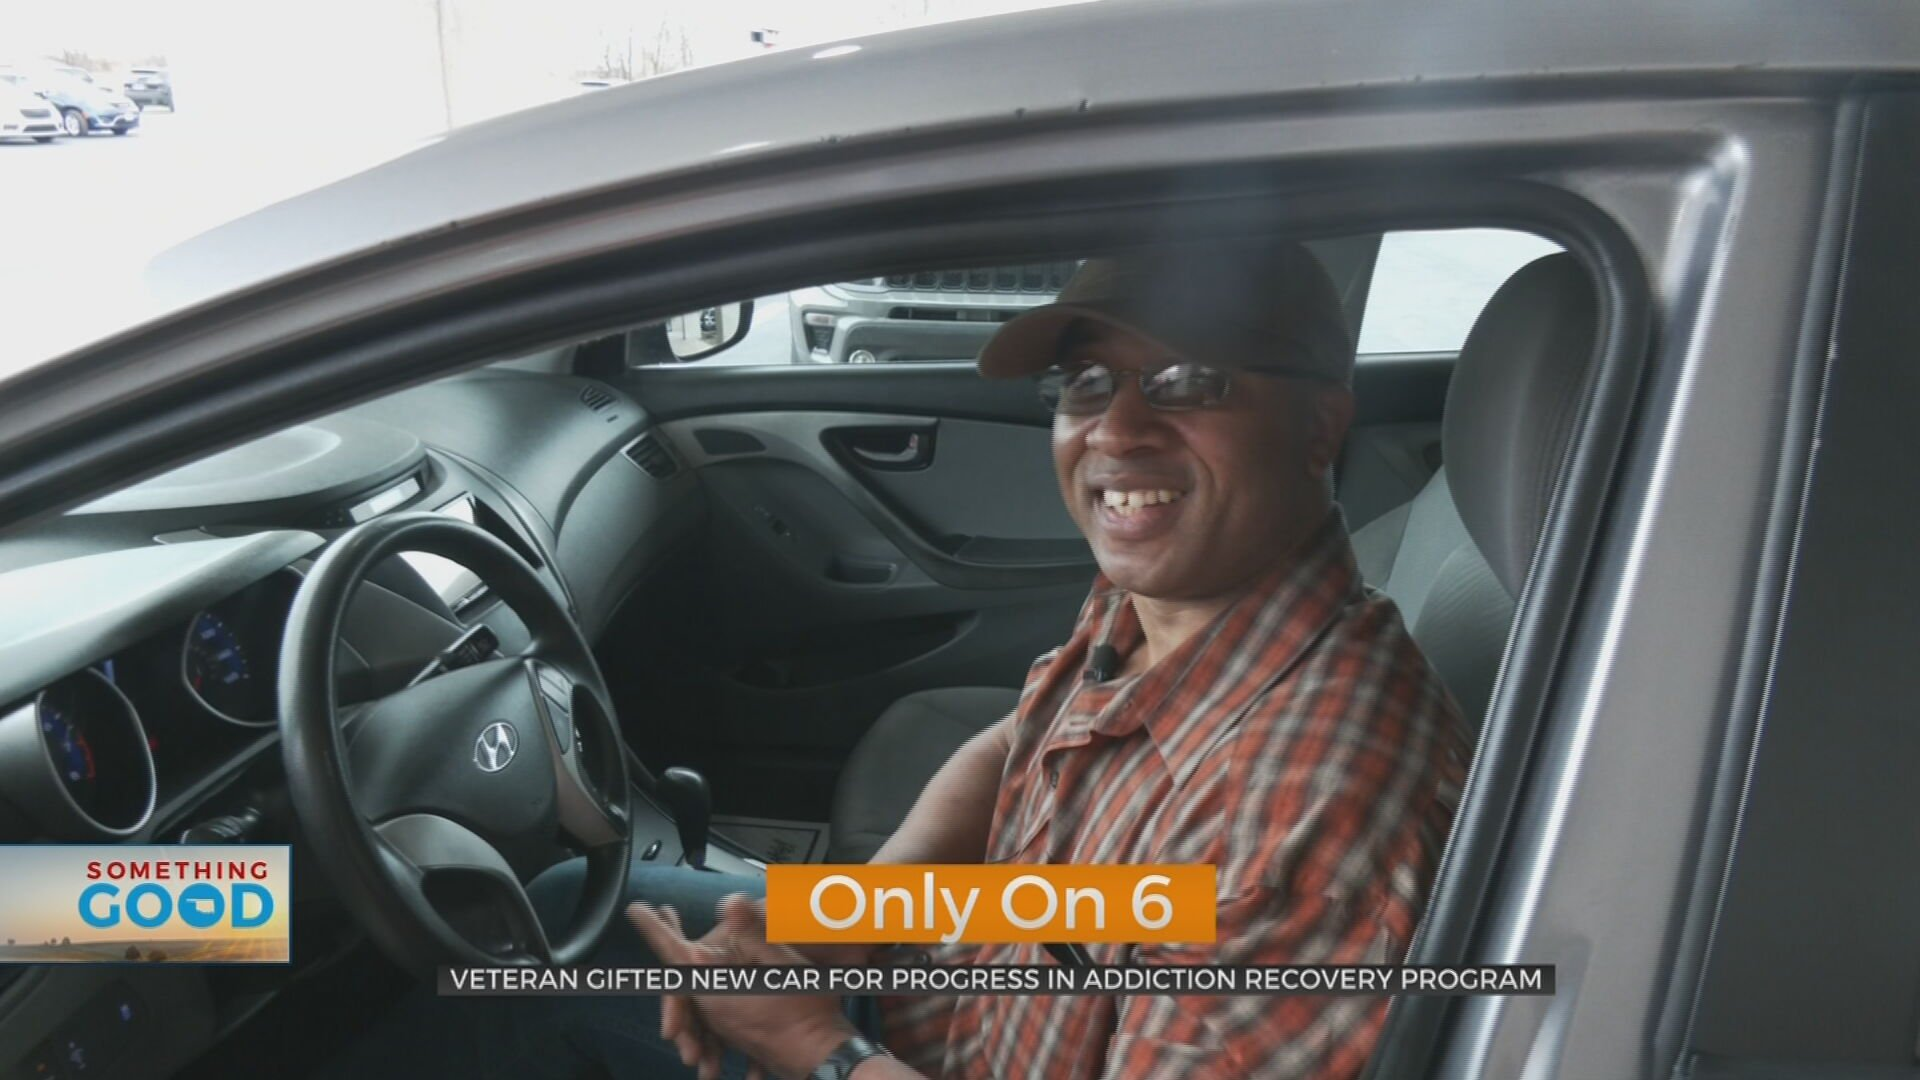 Veteran Surprised With New Car To Celebrate Graduating Addiction Recovery Program